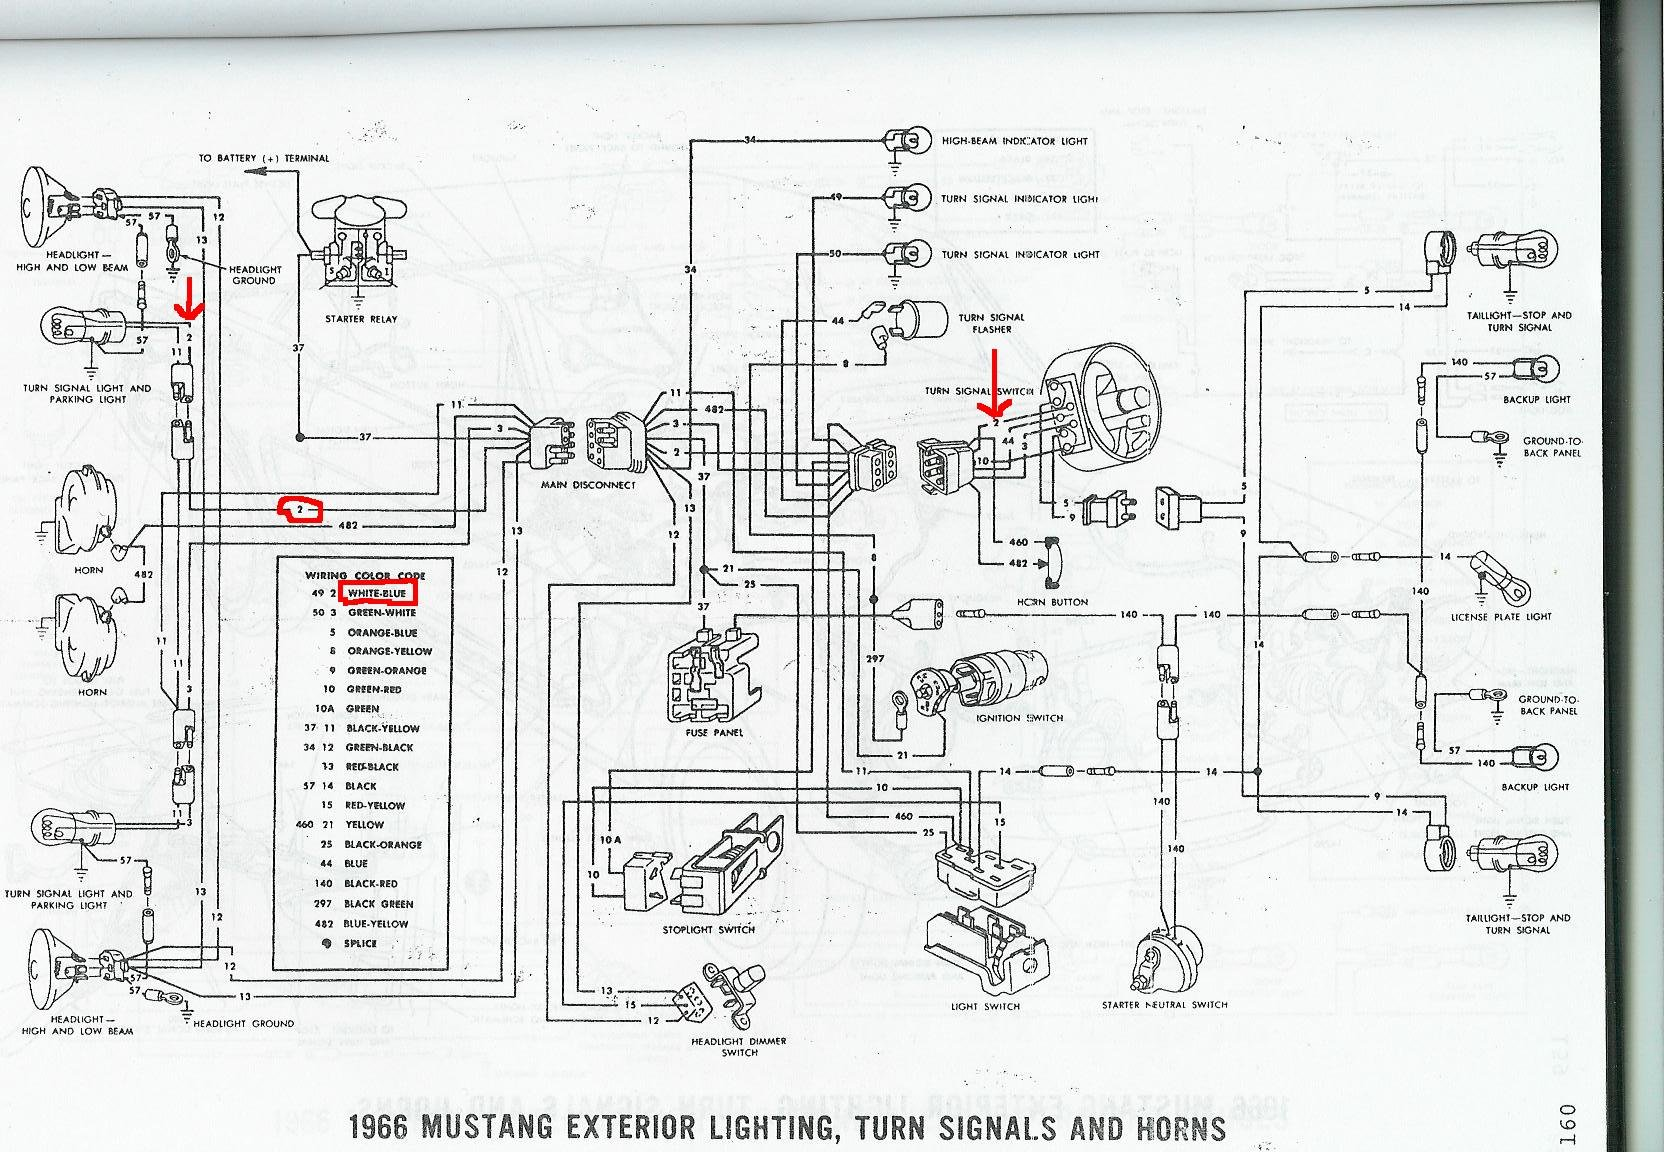 72 Chevelle Wiring Diagram | Control Cables & Wiring Diagram on 1966 chevelle dash removal diagram, 1966 chevelle starter wiring diagram, 1969 camaro wiring harness diagram, 1966 chevelle dash wiring diagram,